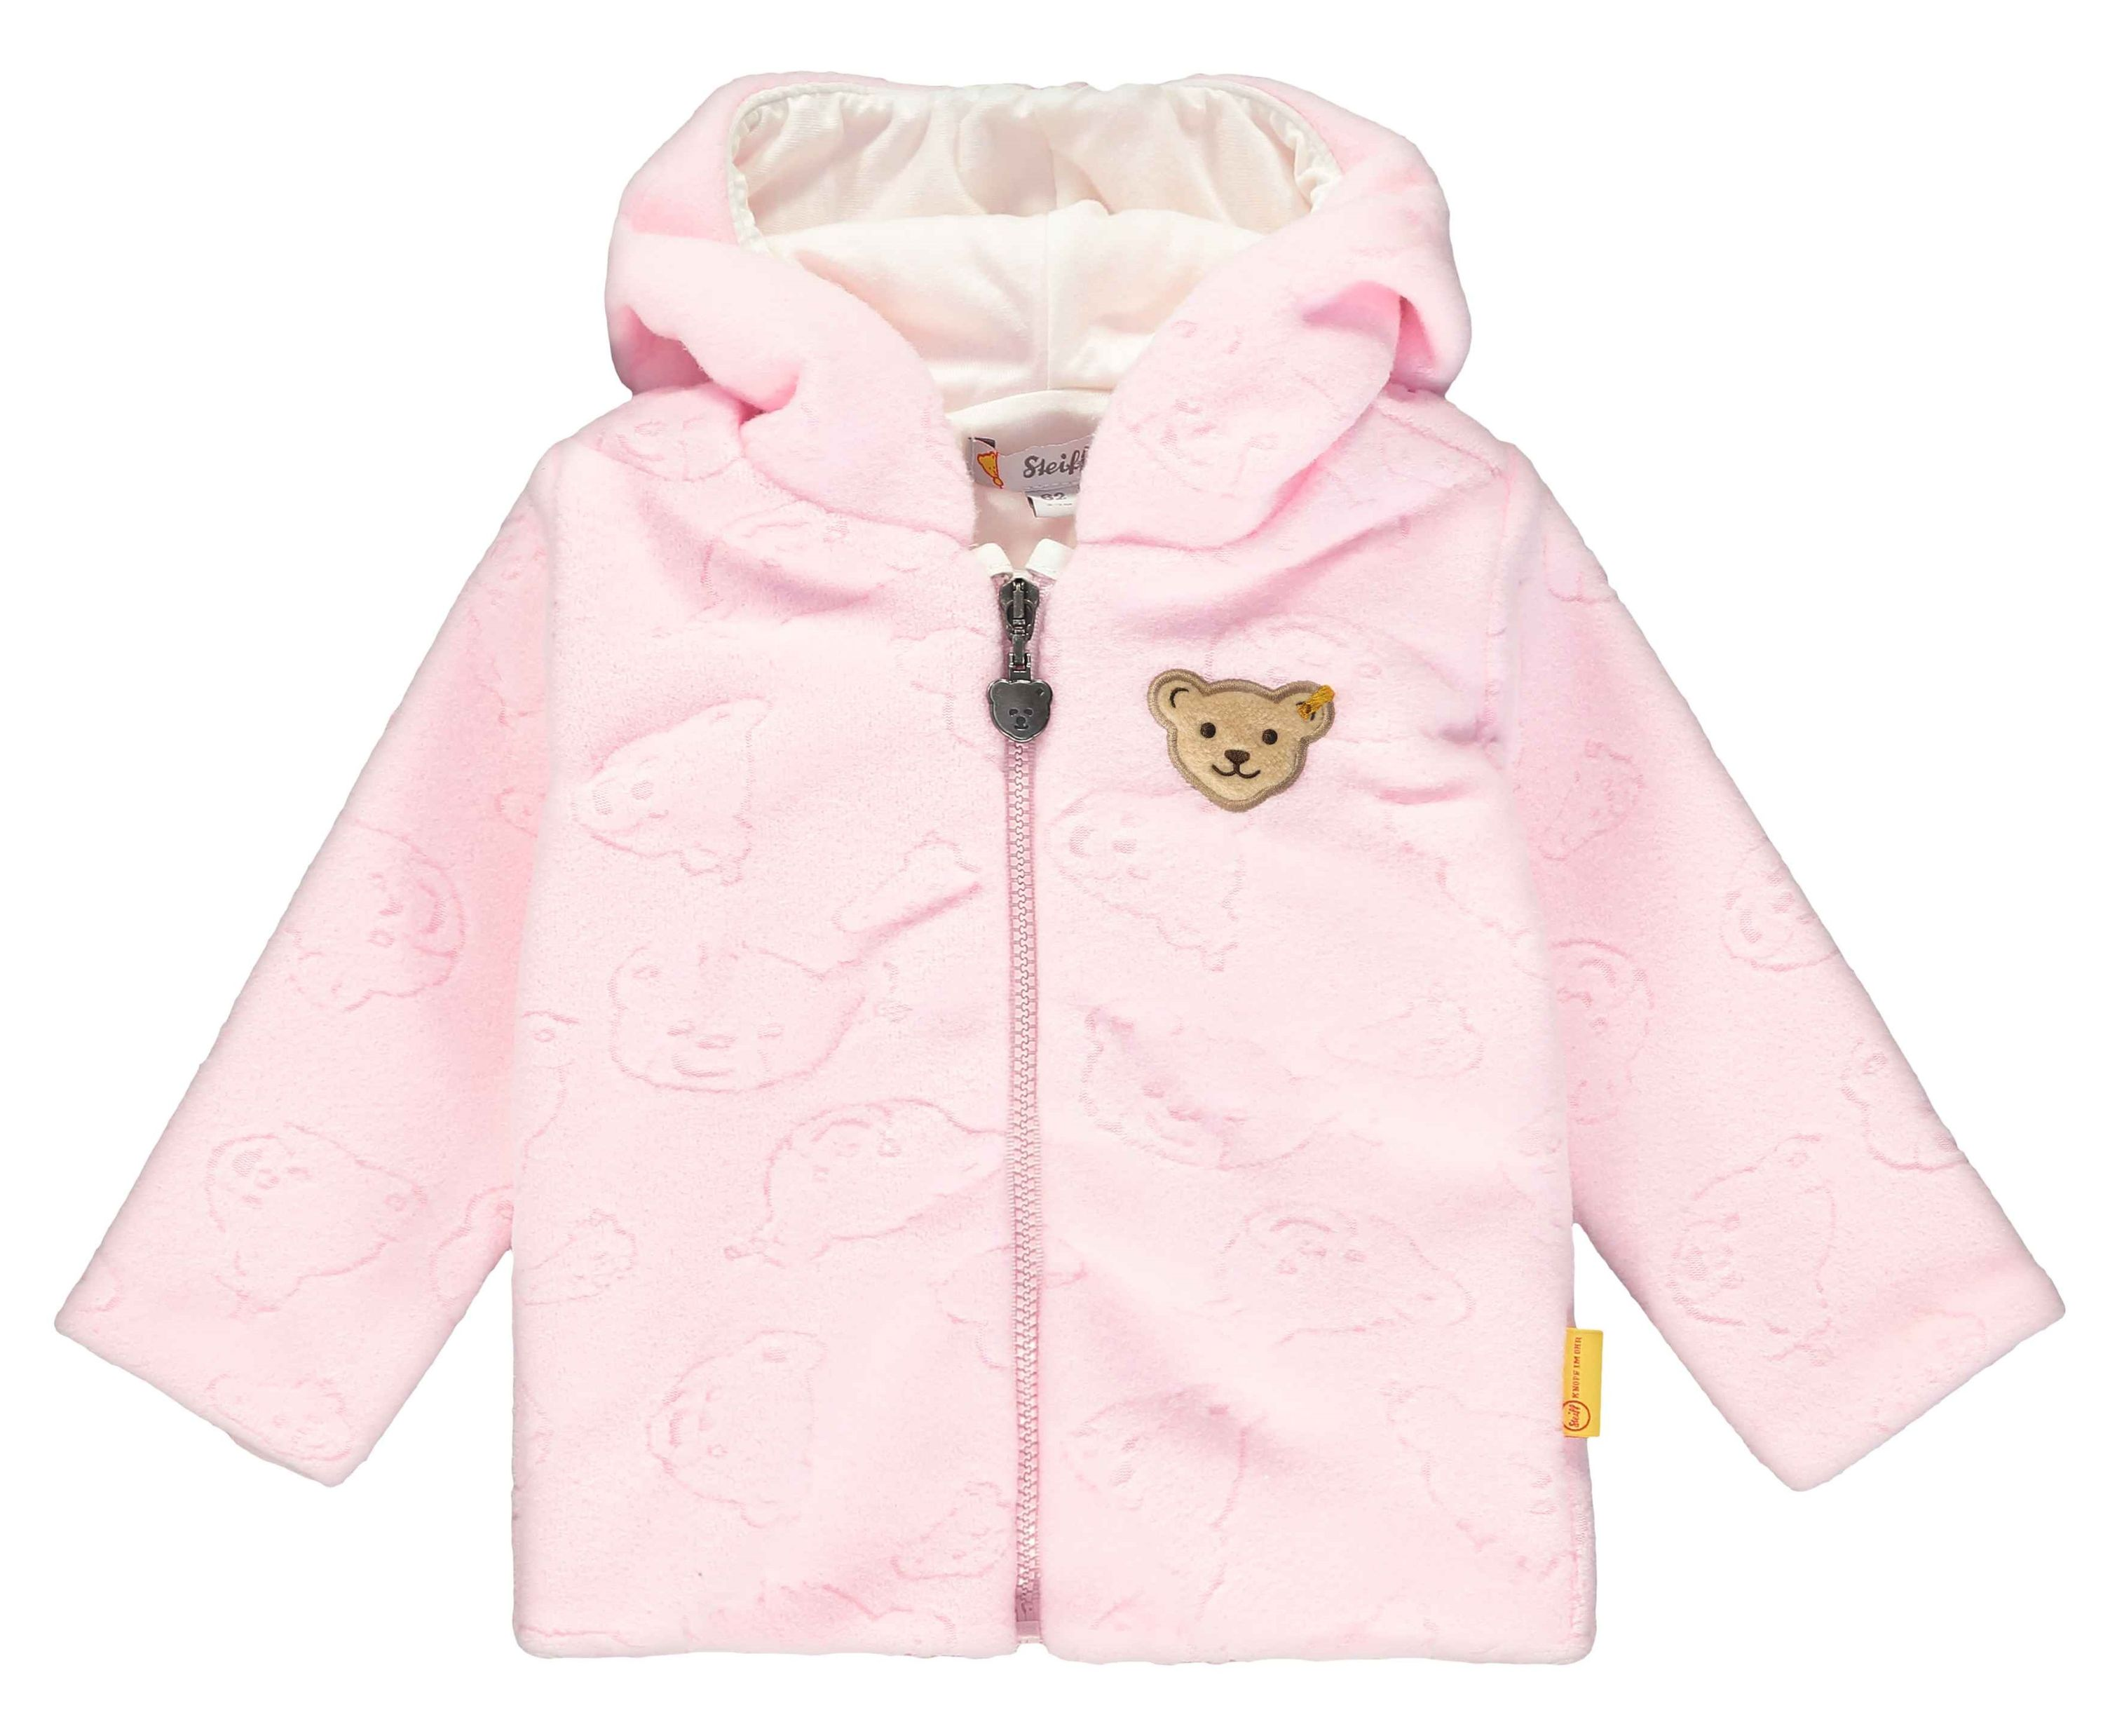 Steiff Baby-Jungen Fleece Jacket Sweatjacke